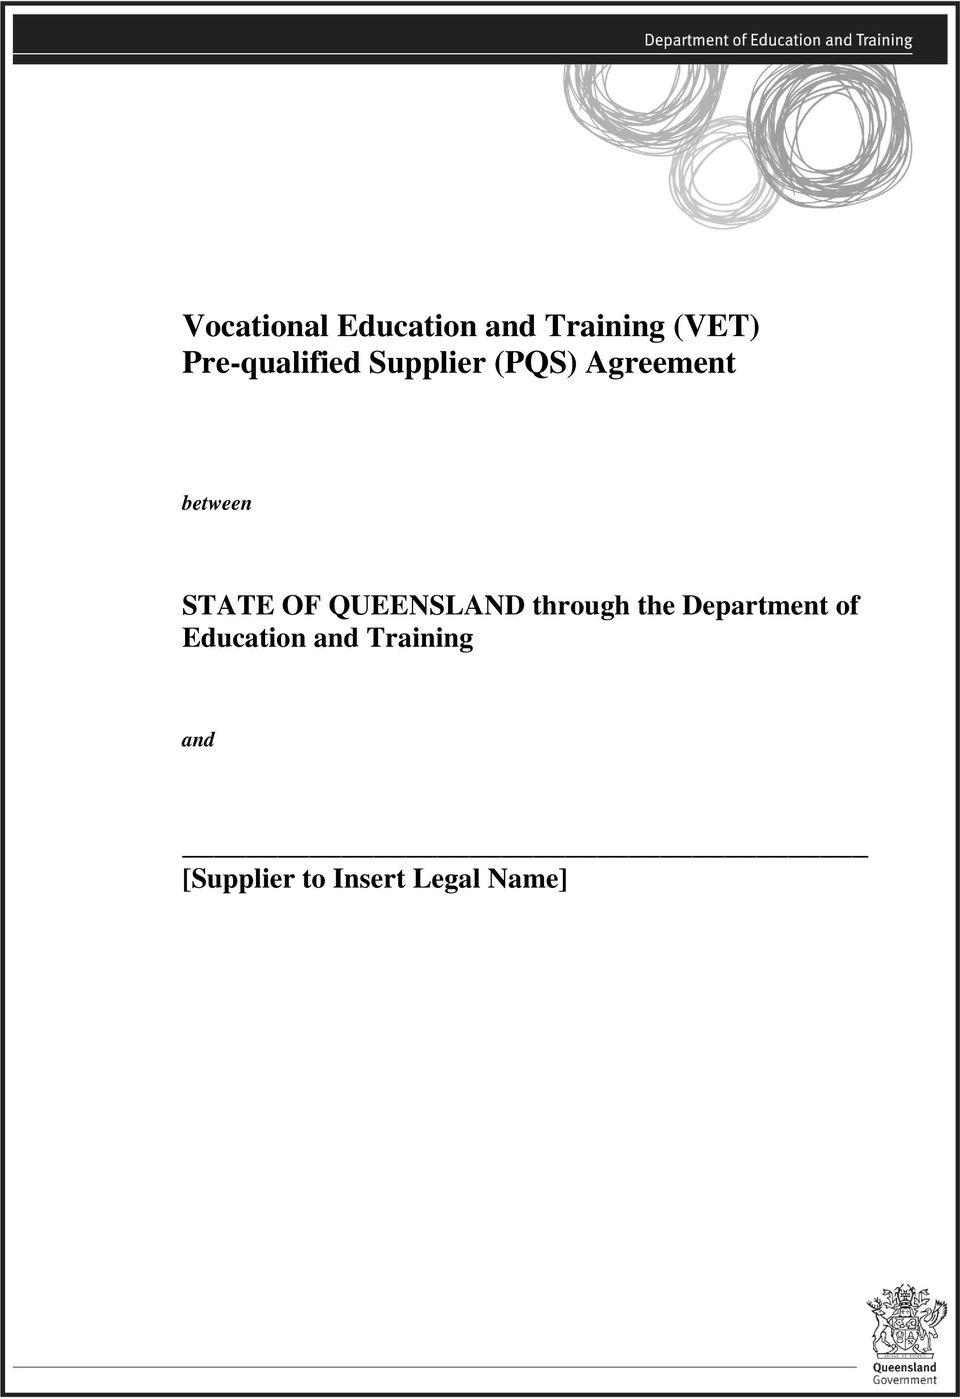 STATE OF QUEENSLAND through the Department of